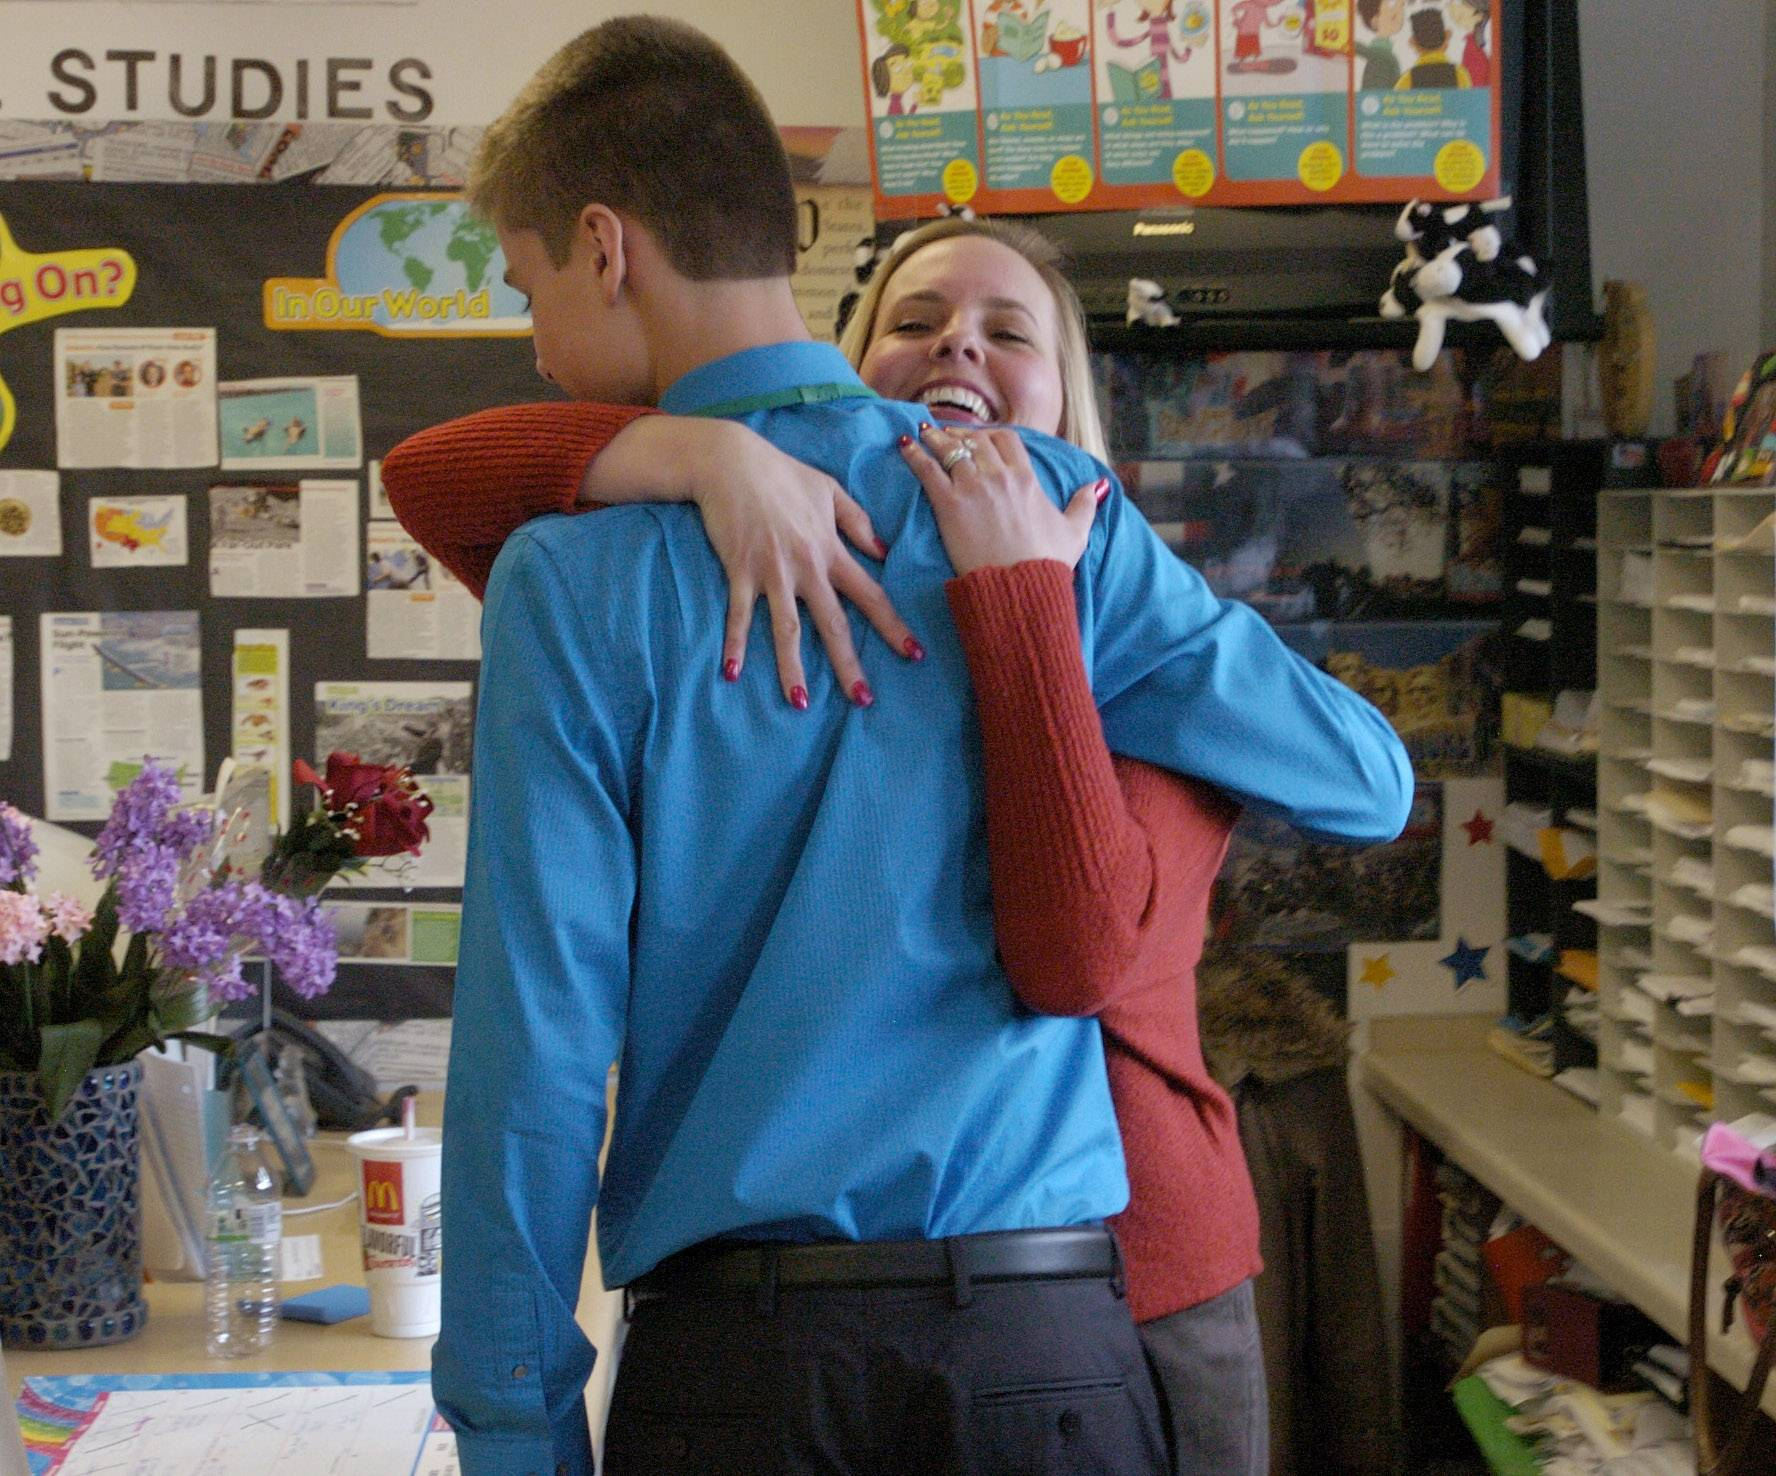 Woodland Middle School seventh grader Bradley Wilinski was superintendent for a day on Tuesday. Katie Herren, his former 4th grade teacher, gives Bradley a hug after he talked to her fifth graders.